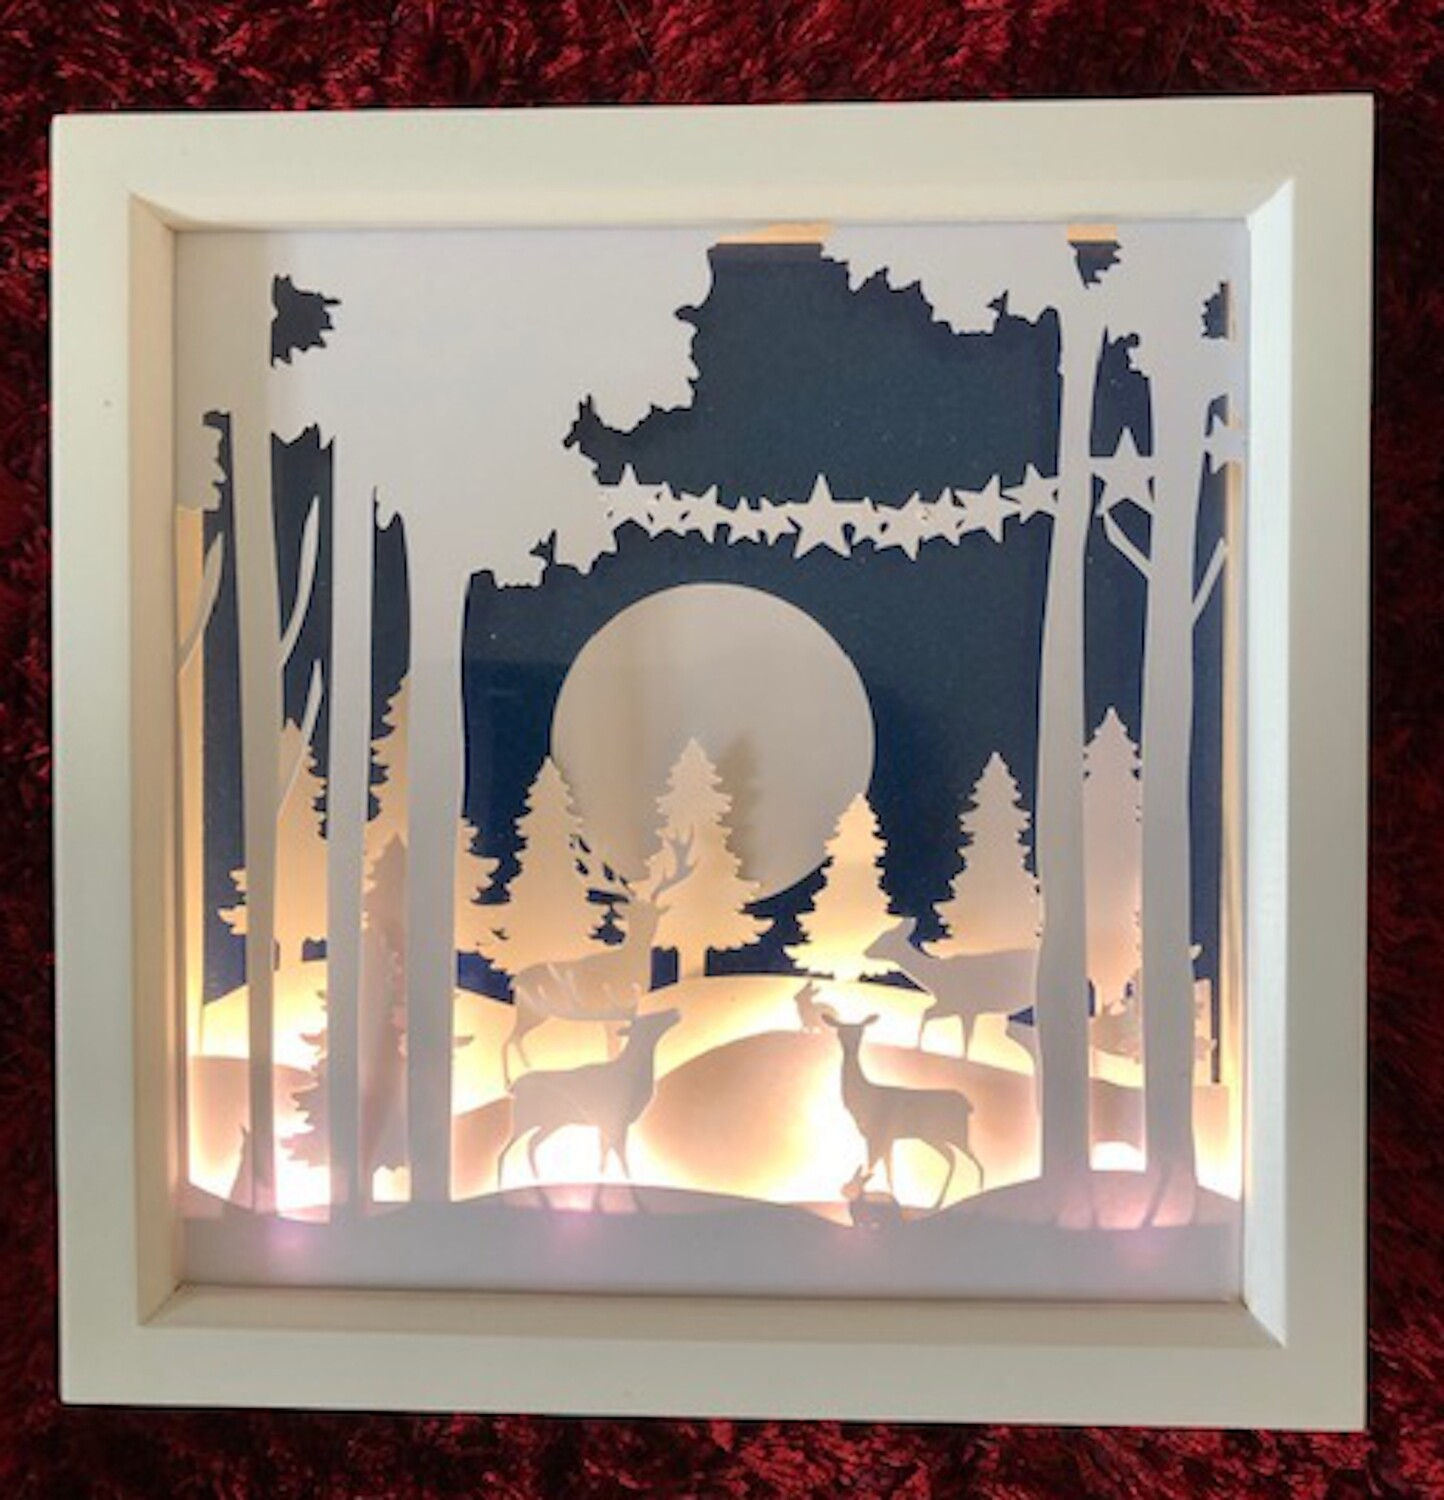 Deer in Forest - Woods Christmas Scene - Multi layered & suitable for Shadow Box frame